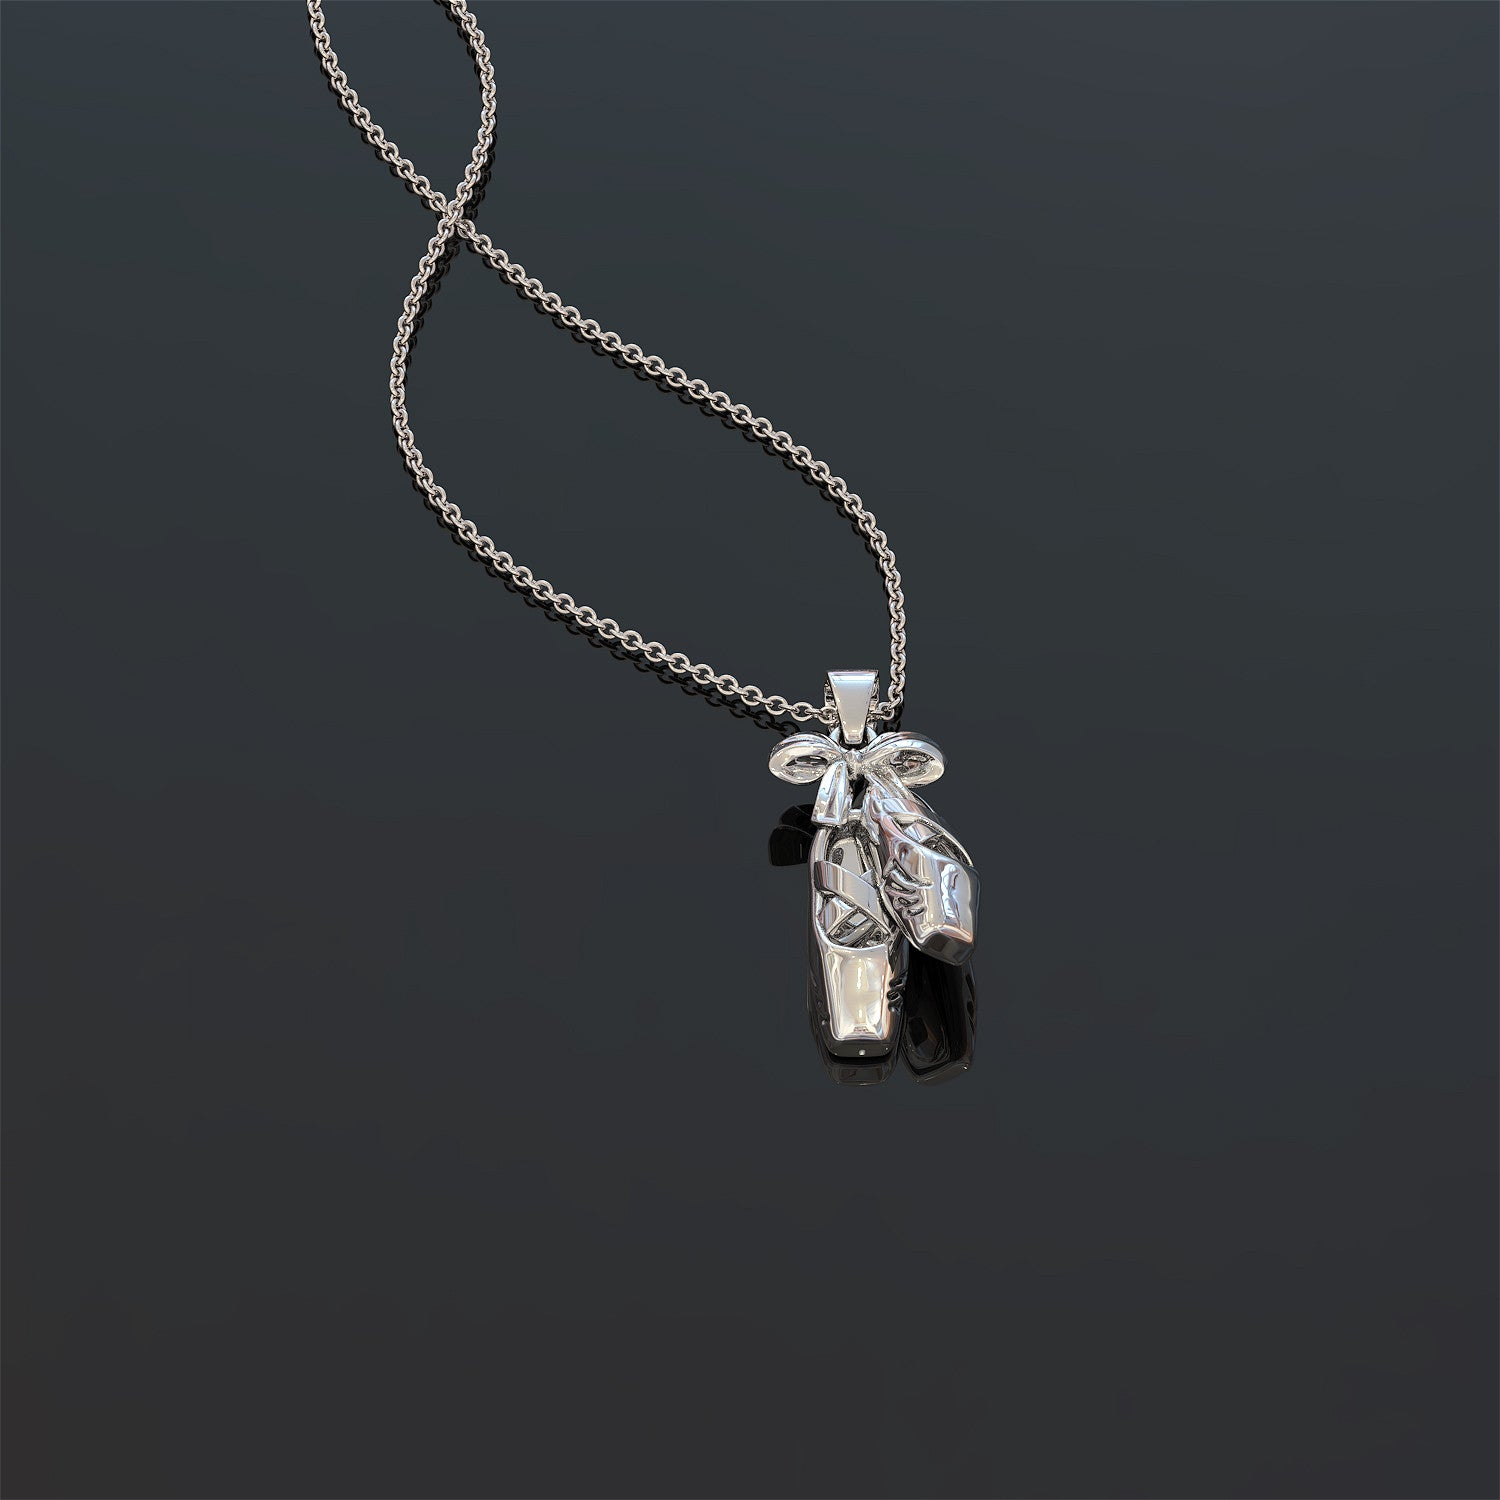 Ballet En Pointe Necklace